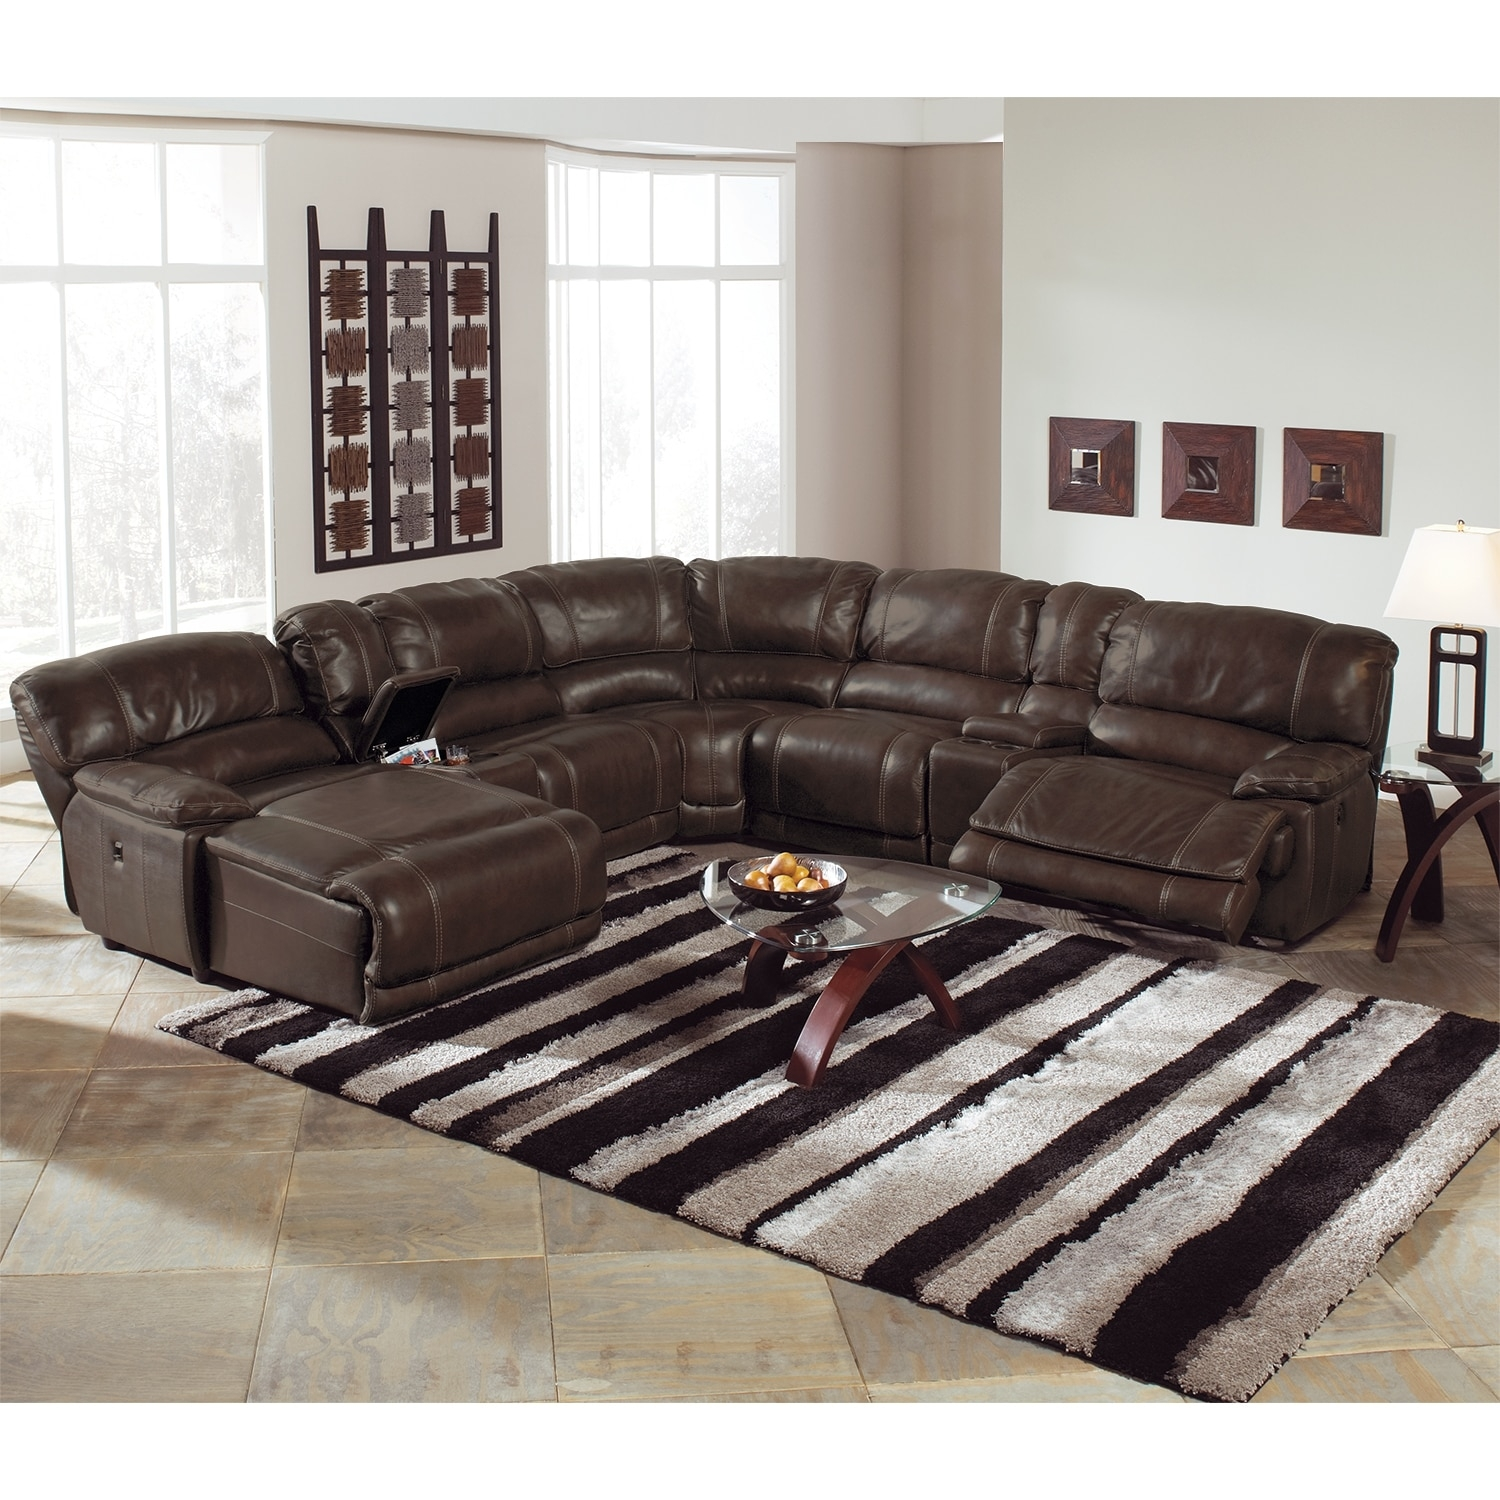 Best Power Reclining Sectional Sofas Centerfieldbar Com : power reclining sectional sofa - Sectionals, Sofas & Couches